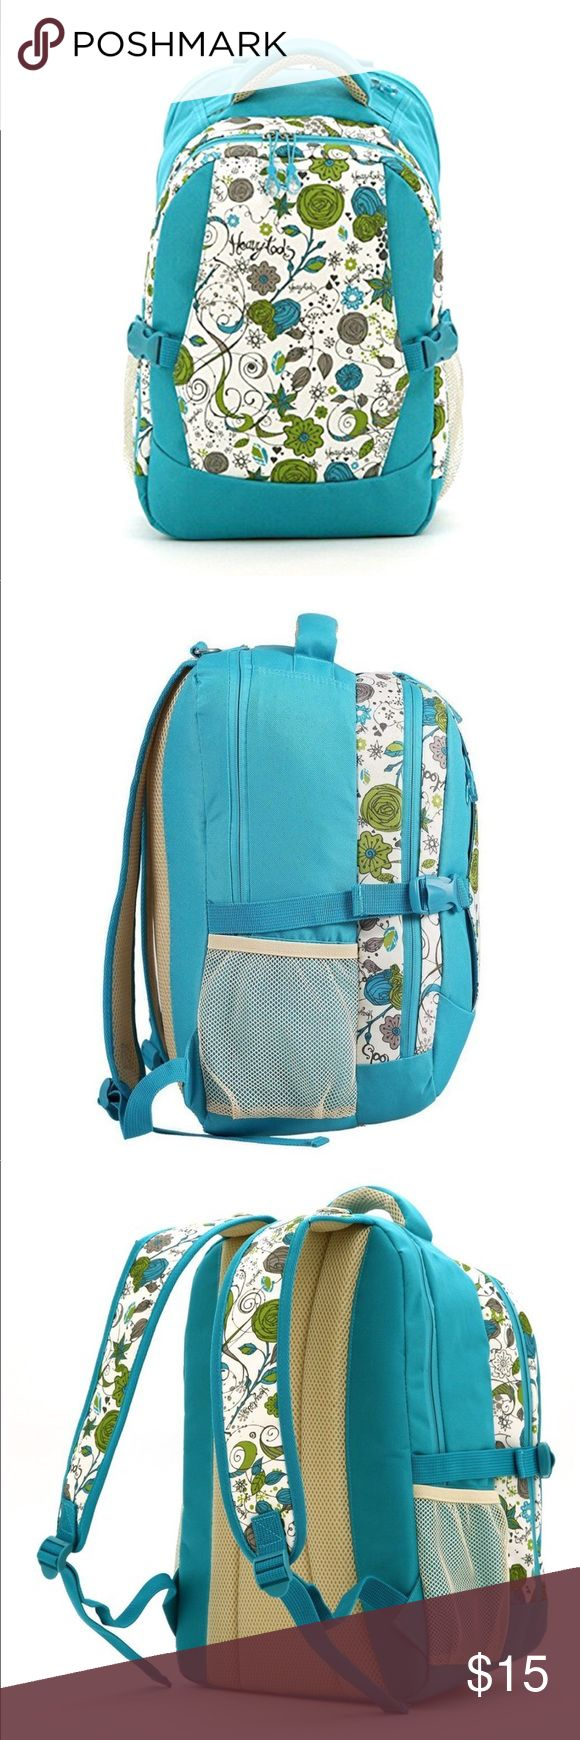 """Floral backpack style diaper bag 👶 Floral backpack style diaper bag with multiple compartments for easy access and organization.Approx dimension 19 inches x 14 inches. Straps are adjustable.Last photo shows an area to put a wipes container for easy access.First two photos are to show color and design outside of the stock photos. I don't know why the stock photo shows the lettering differently than the actual bag. The actual bag has lettering that says """"happy baby."""" *Stock photo shows…"""